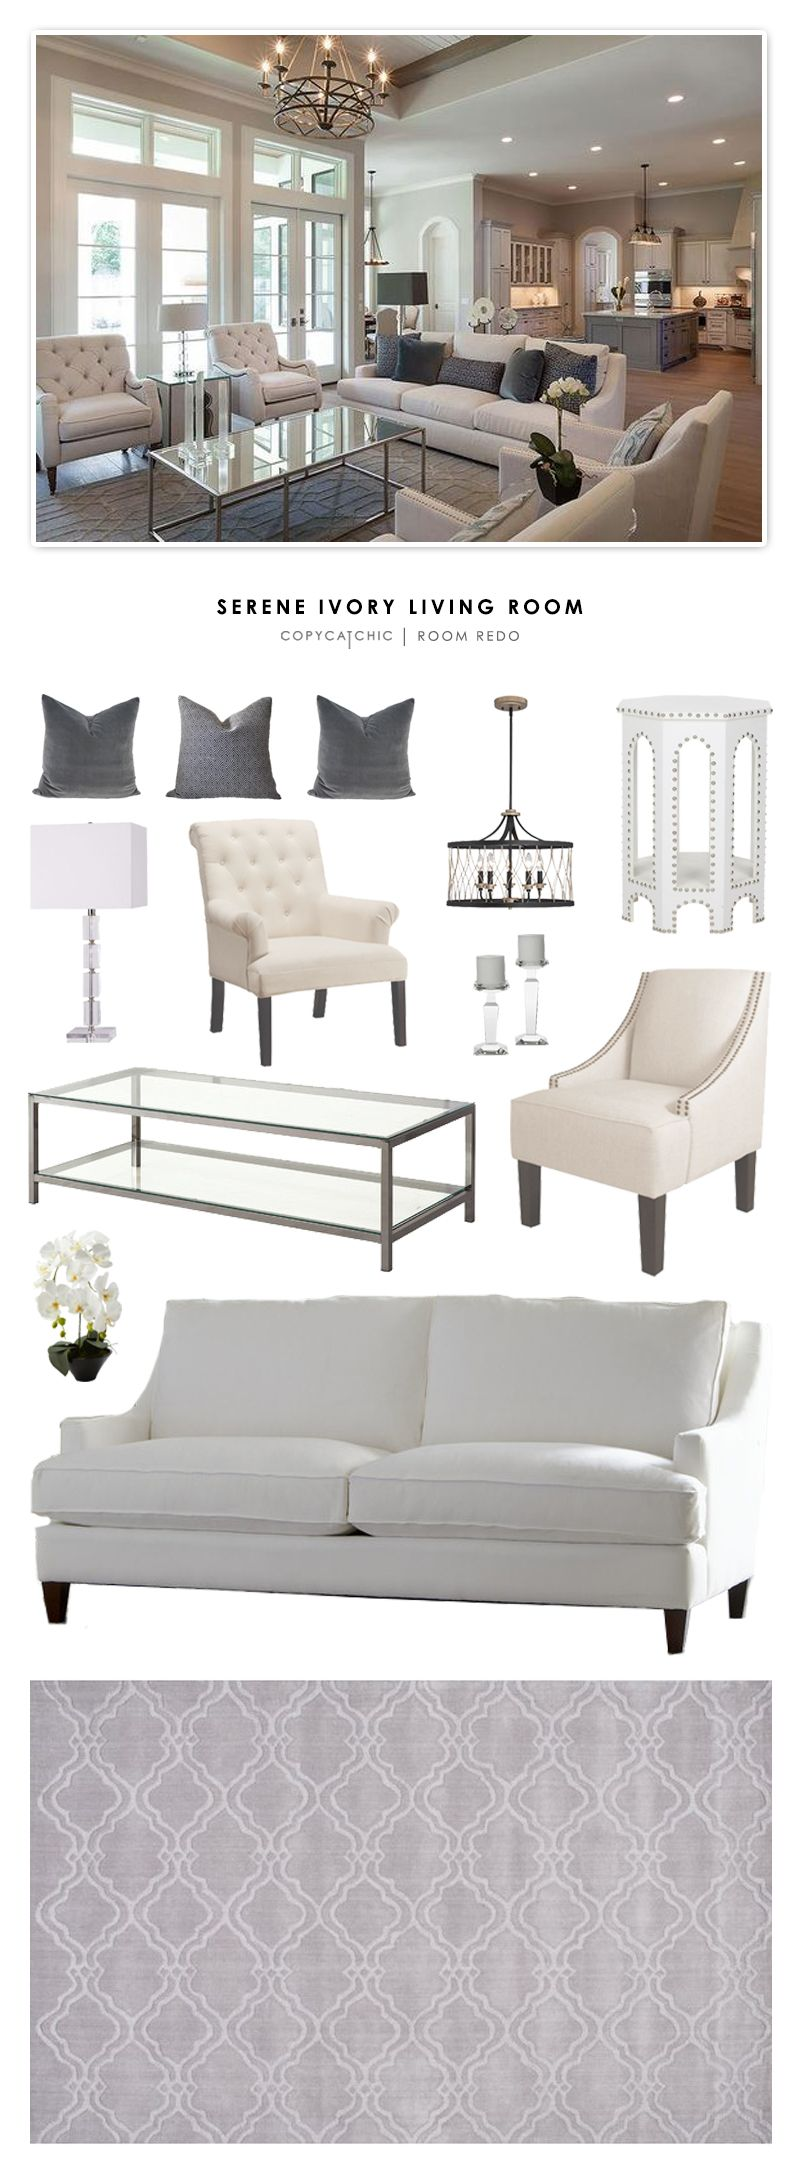 Copy cat chic room redo serene ivory living room